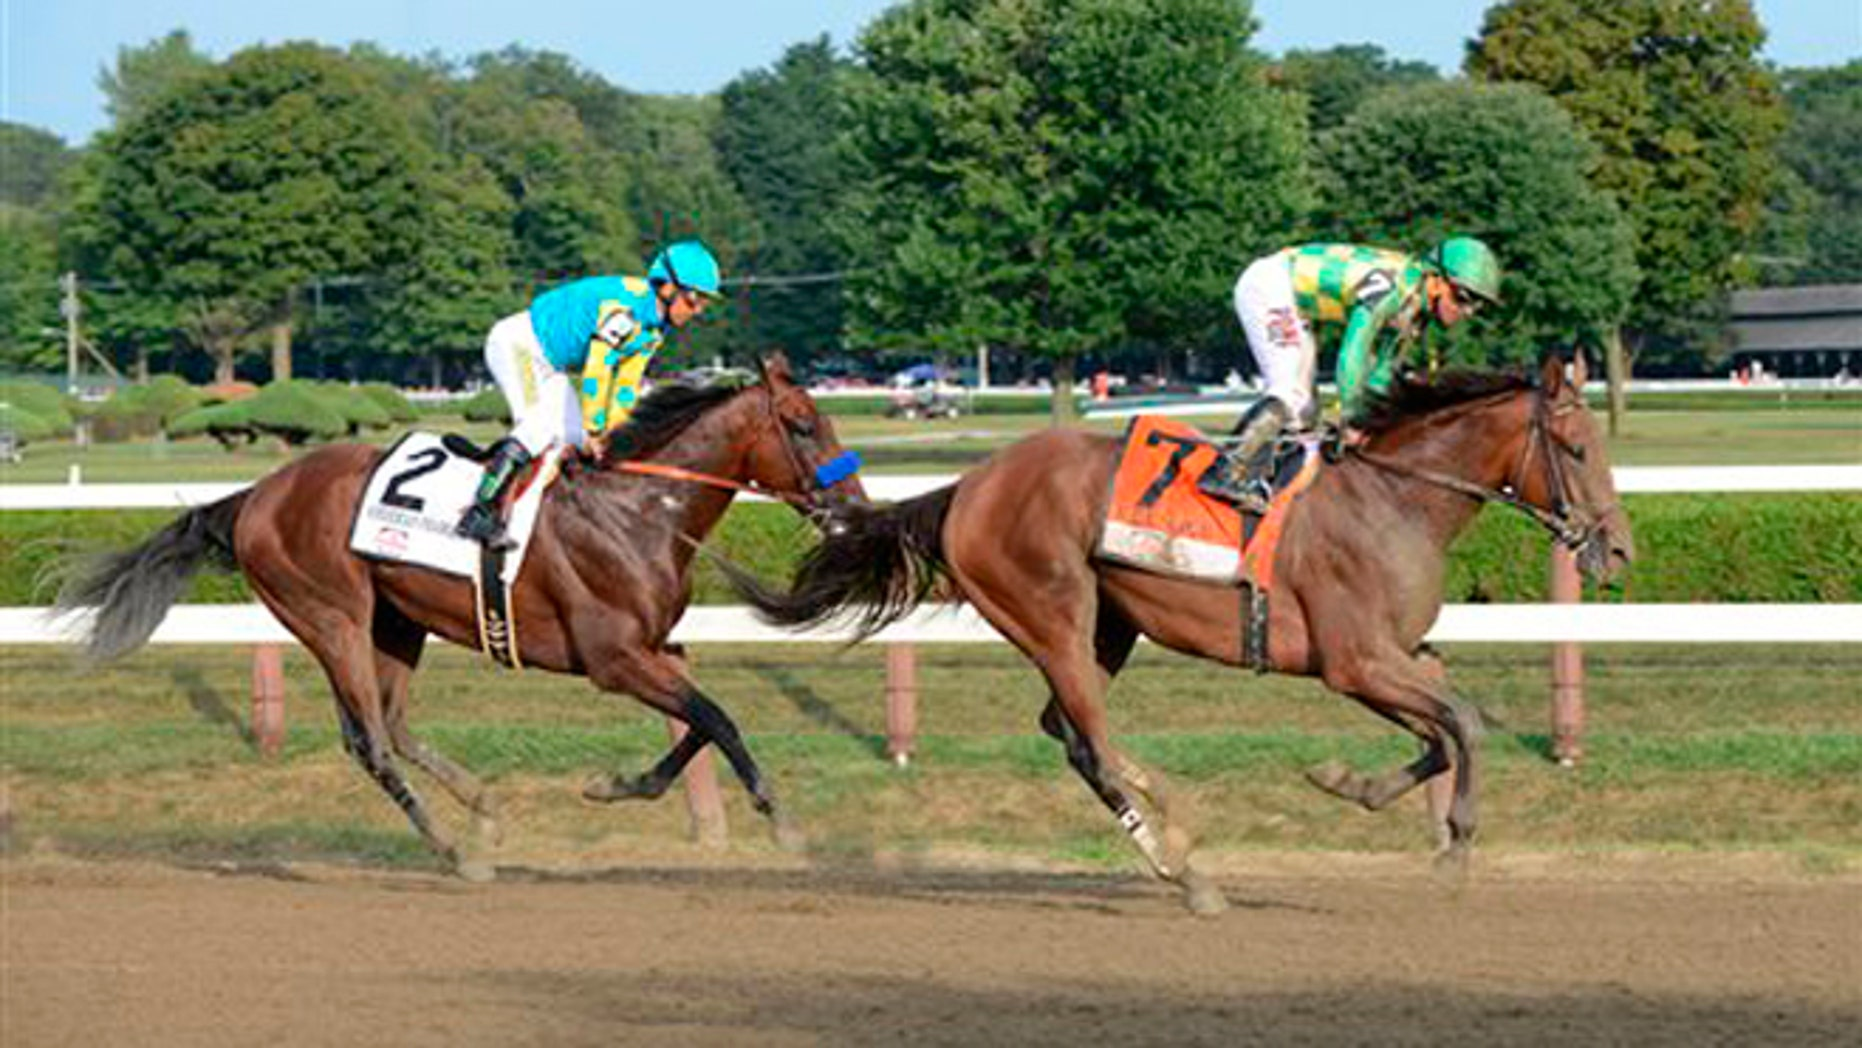 Aug. 29, 2015: Keen Ice , right, with Javier Castellano, right, slows after winning the Travers Stakes ahead of American Pharoah, with jockey Victor Espinoza, at Saratoga Race Course in Saratoga Springs, N.Y.